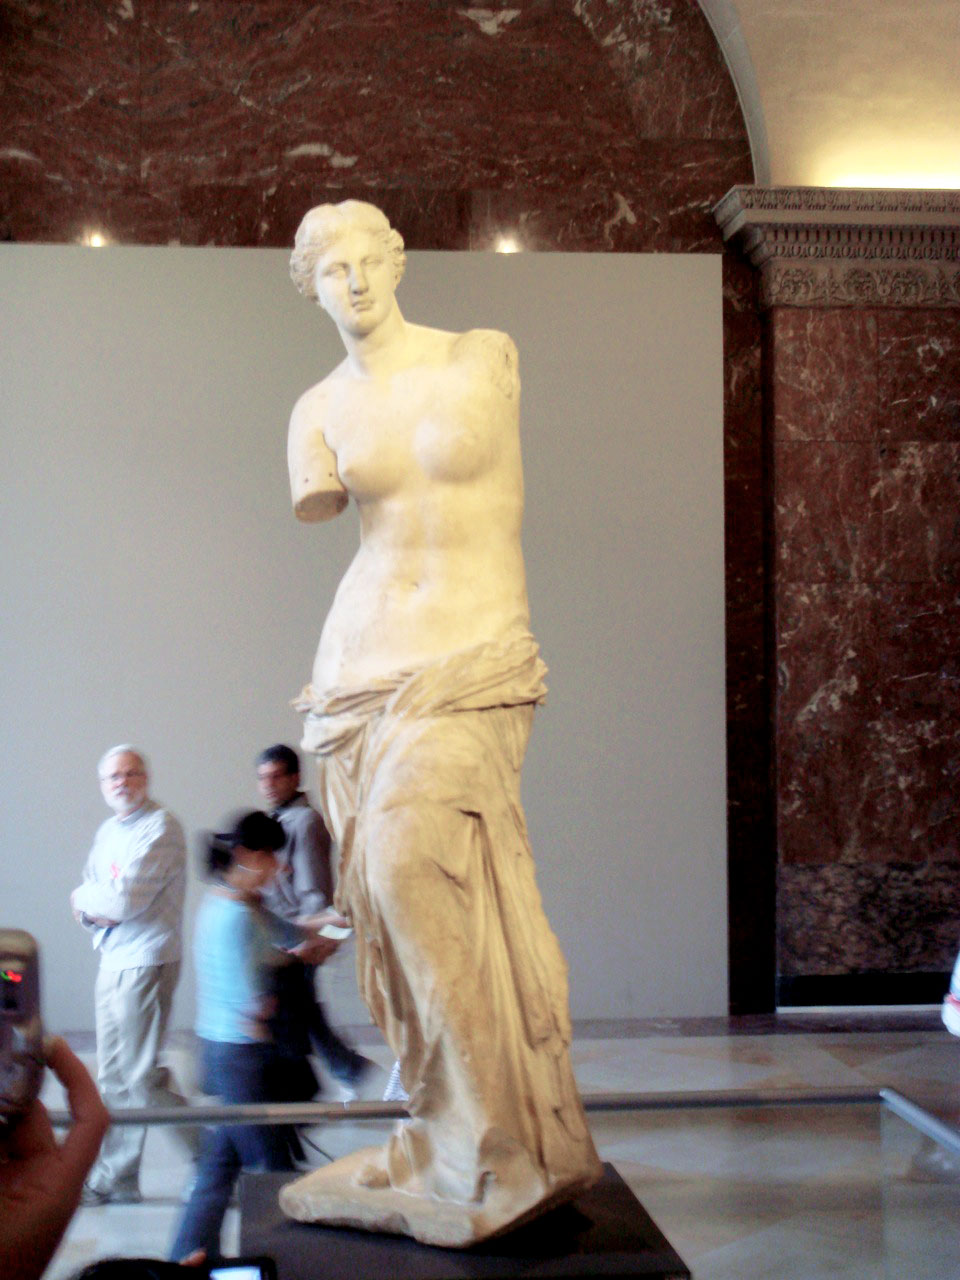 Venus de Milo statue. The Louvre, Paris, France. Photo taken on my first trip to paris in 2007.